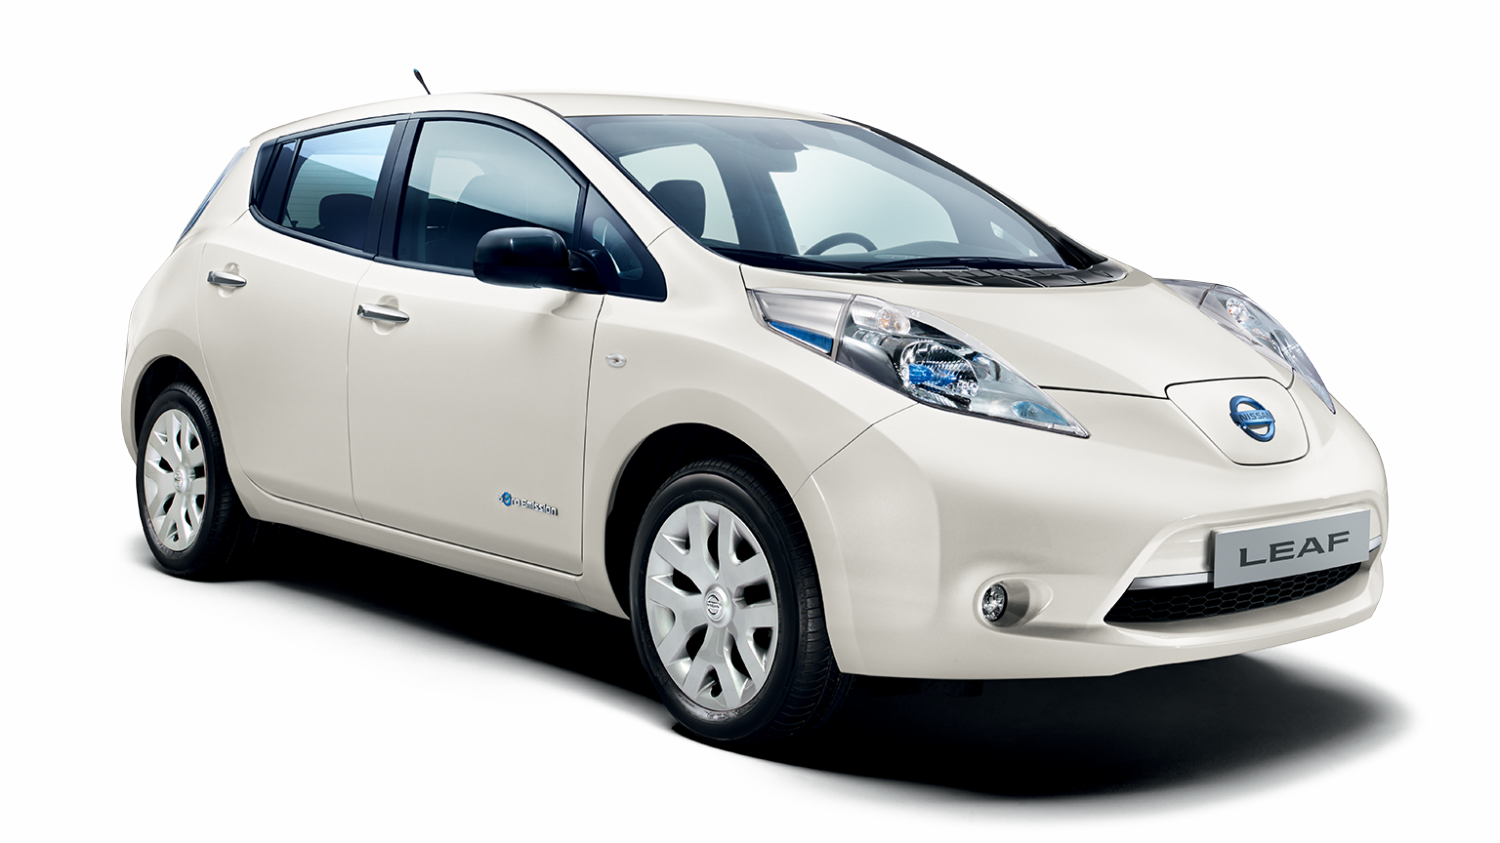 prijzen specificaties nissan leaf elektrische auto 39 s nissan. Black Bedroom Furniture Sets. Home Design Ideas